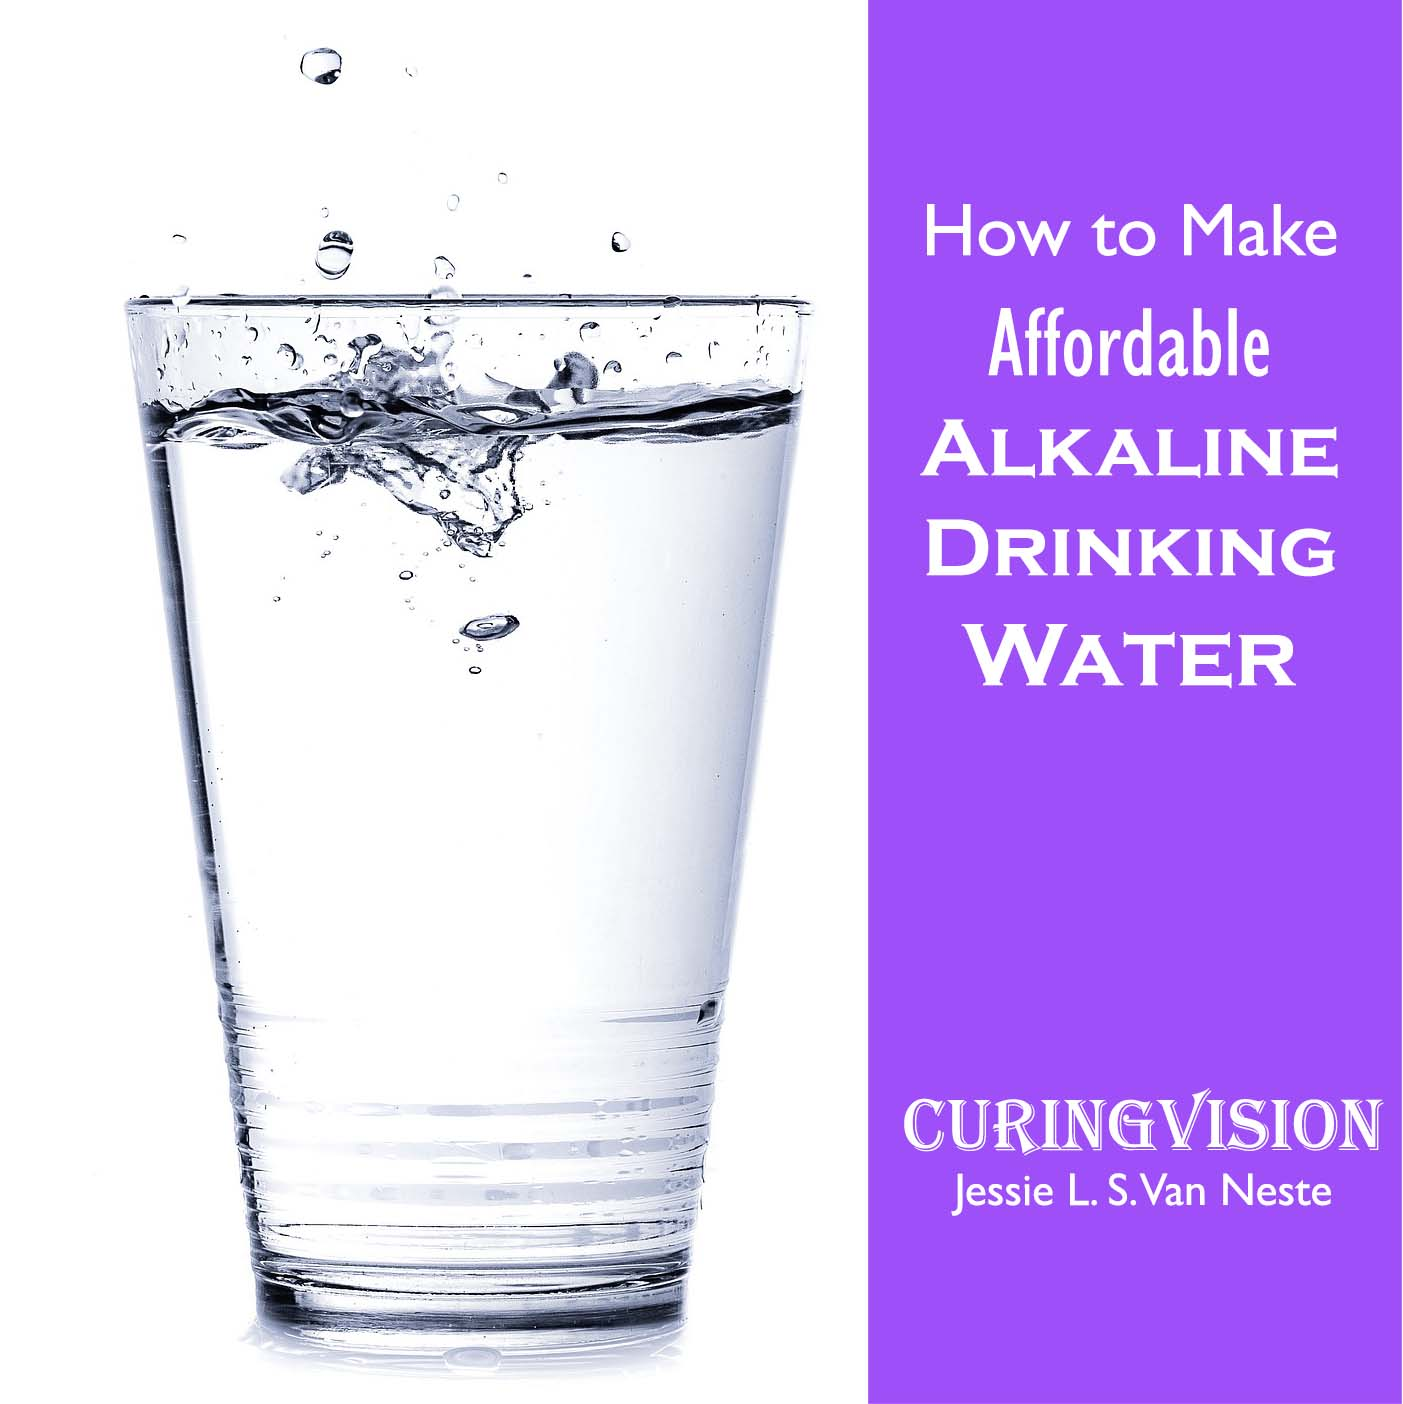 How-to-Make-Affordable-Alkaline-Drinking-Water